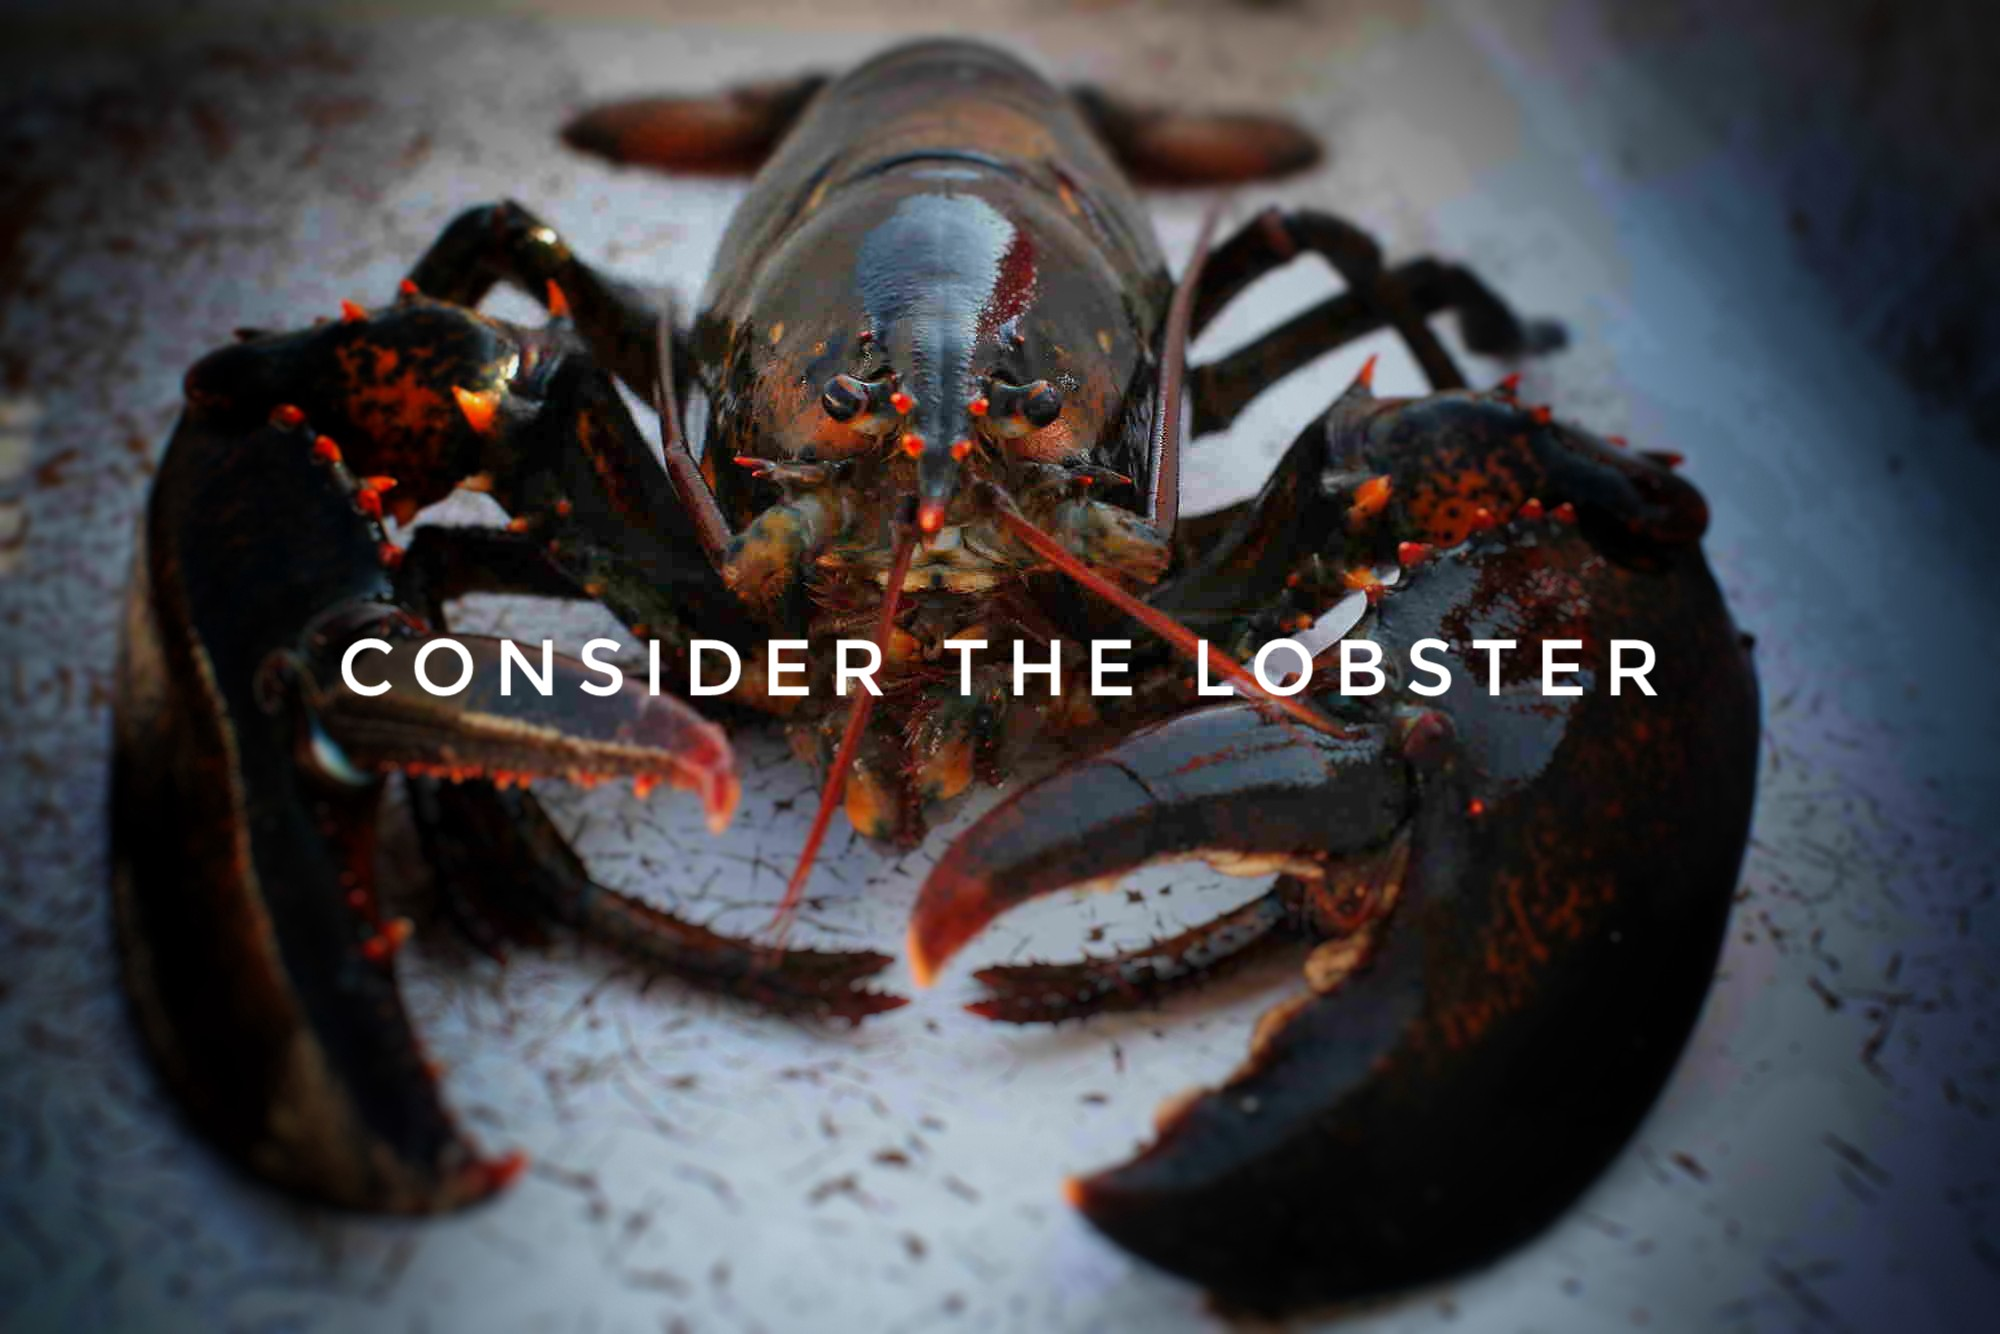 consider the lobster d Consider the lobster: a summary david foster wallace's 2004 article consider the lobster, originally published in gourmet magazine, investigates a topic not generally covered by such publications—the sensations of one of the animals who becomes our food.